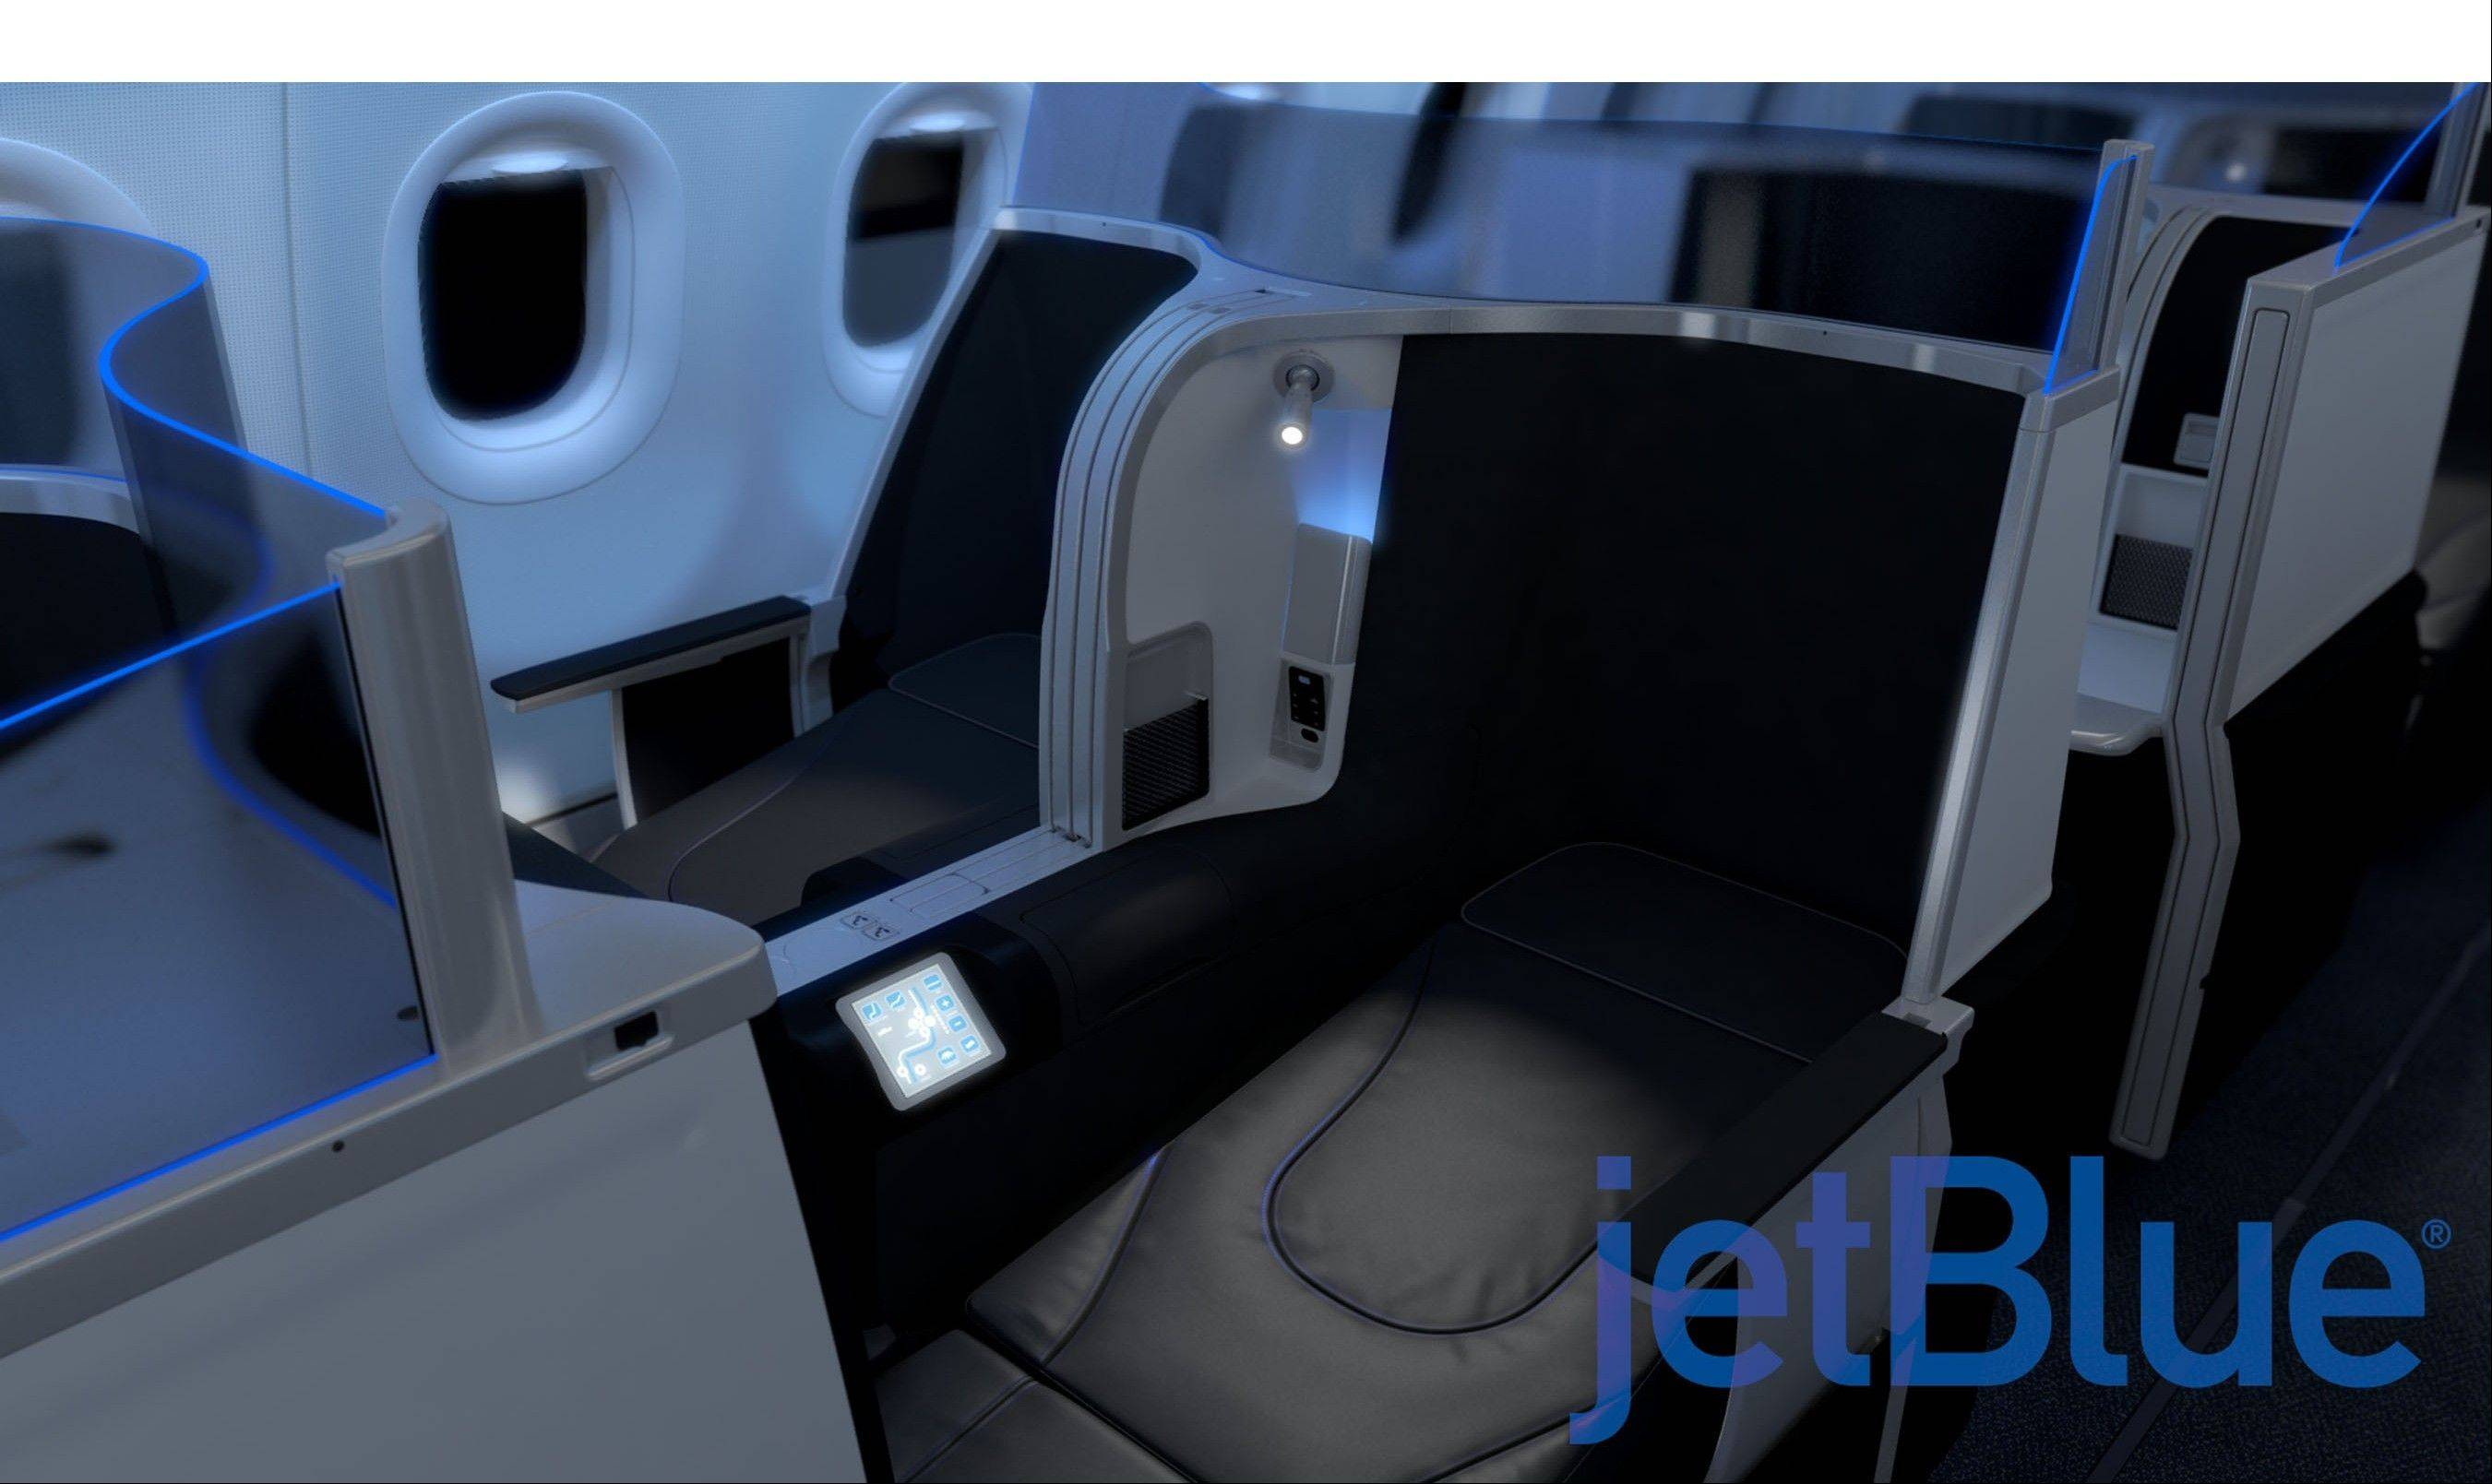 JetBlue Airways reinvents transcontinental premium travel with a new lie-flat seat.